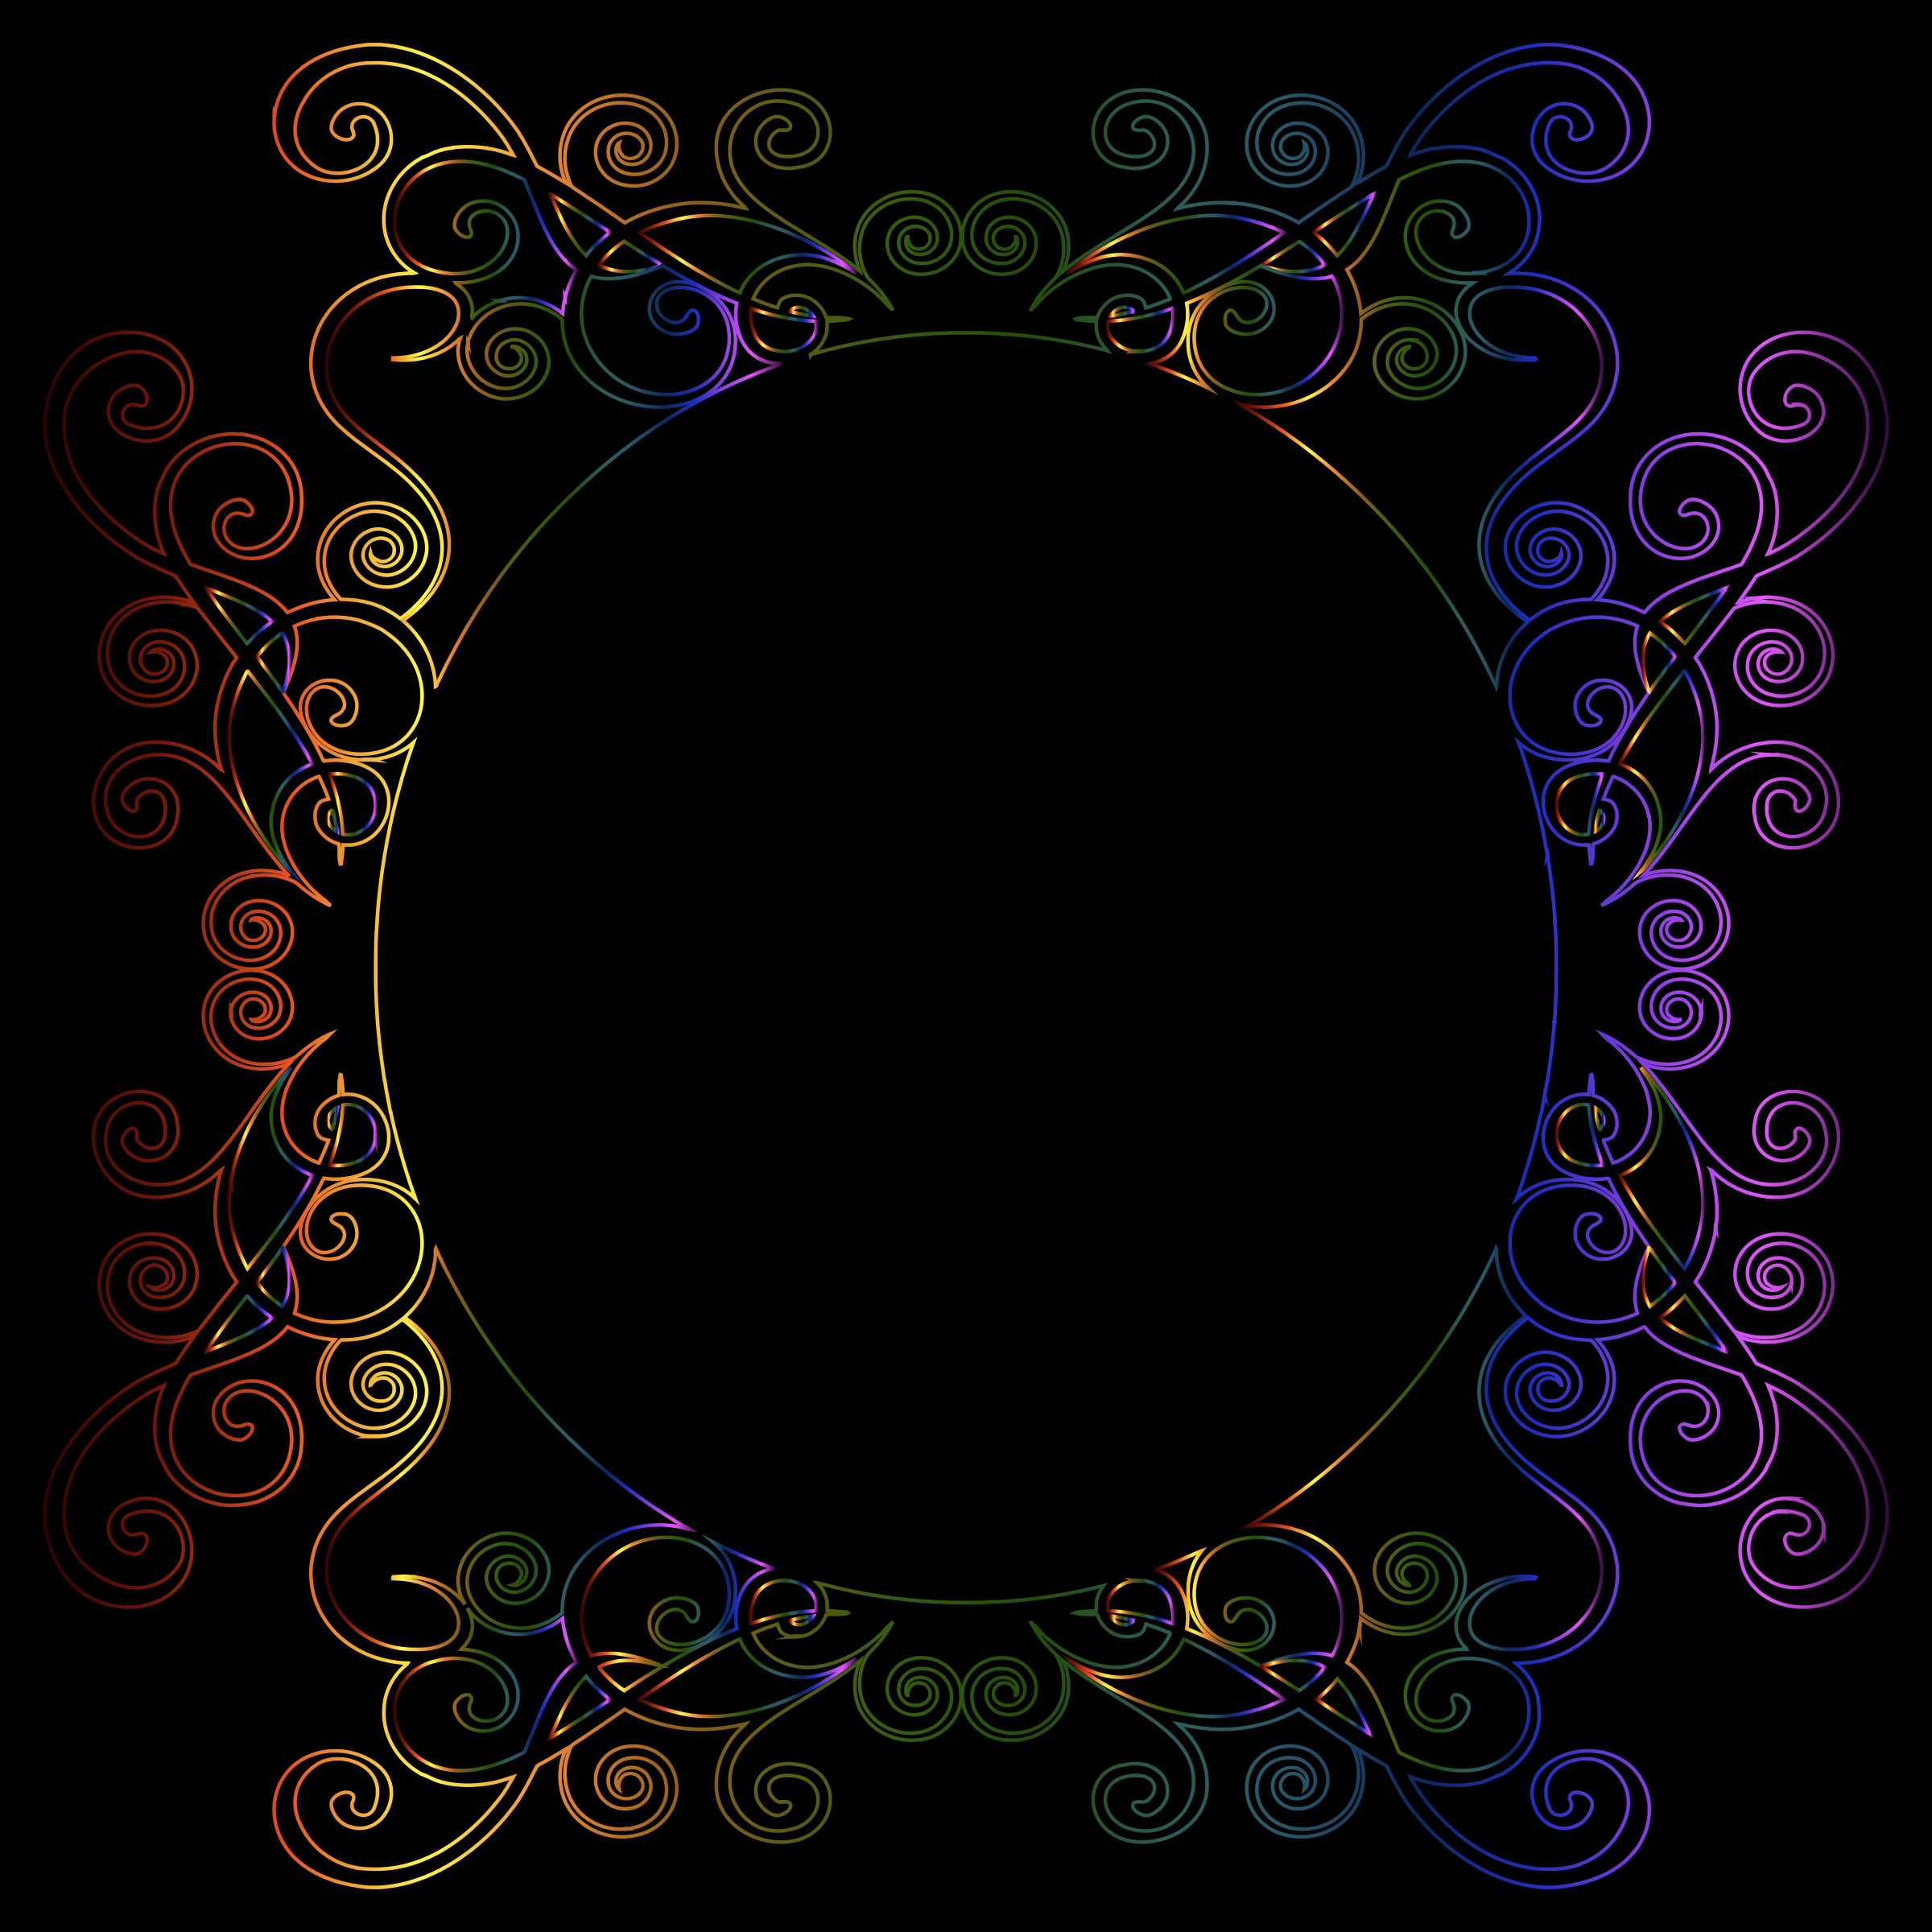 Prismatic Flourish Frame 7 by GDJ